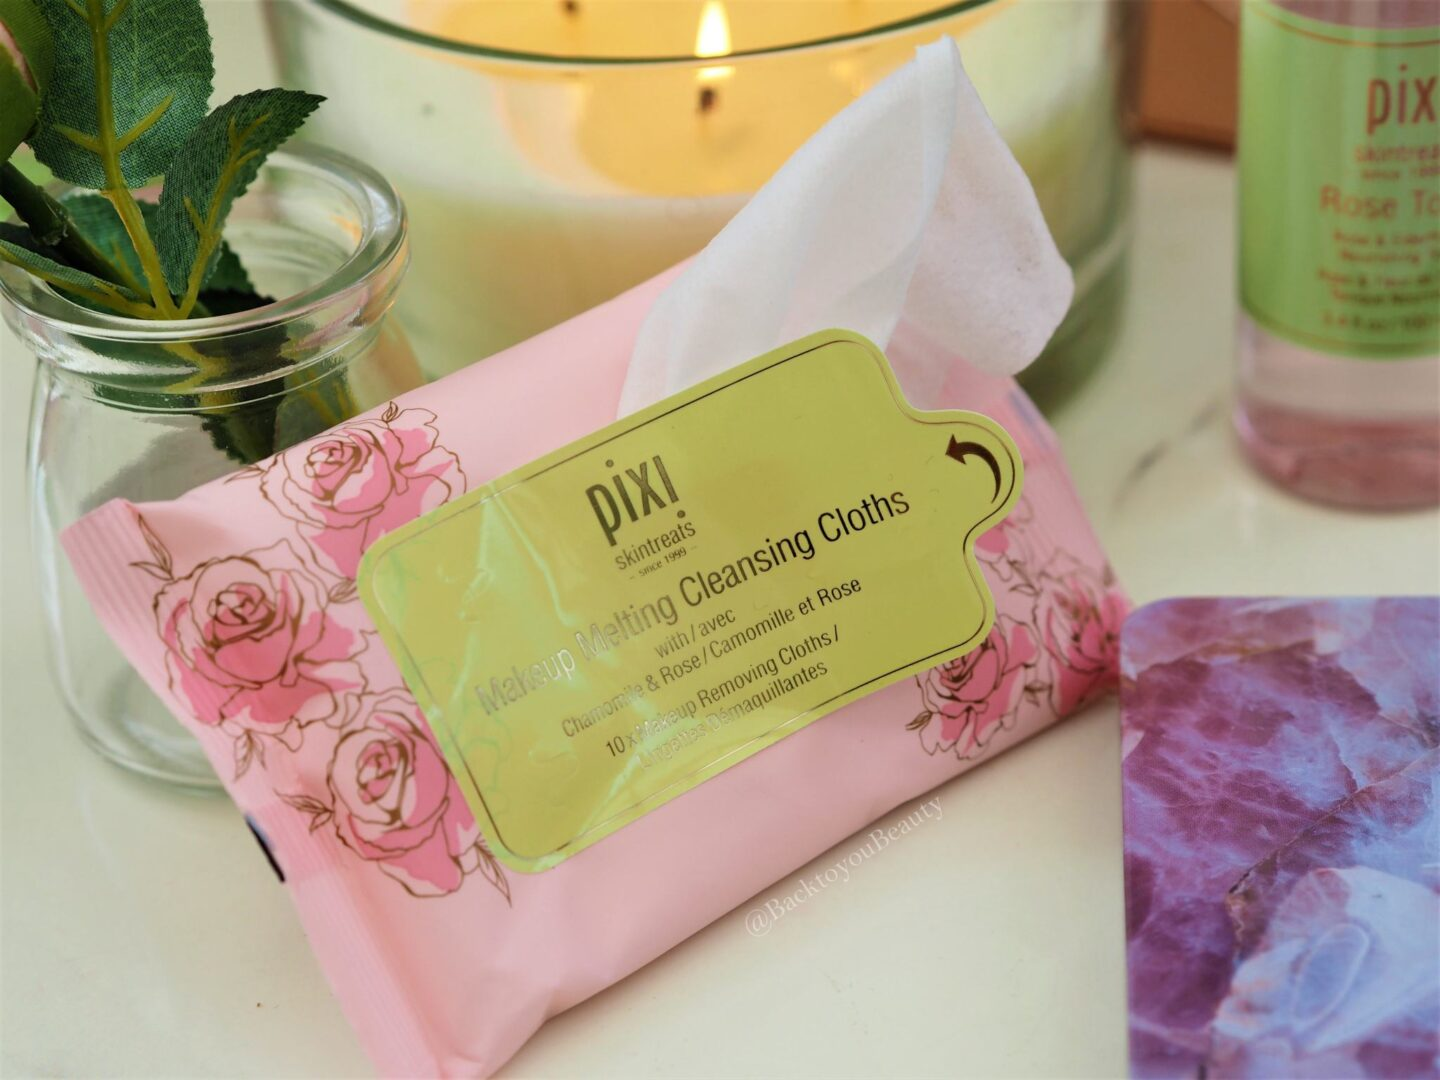 Pixi Make up Cleansing Cloths